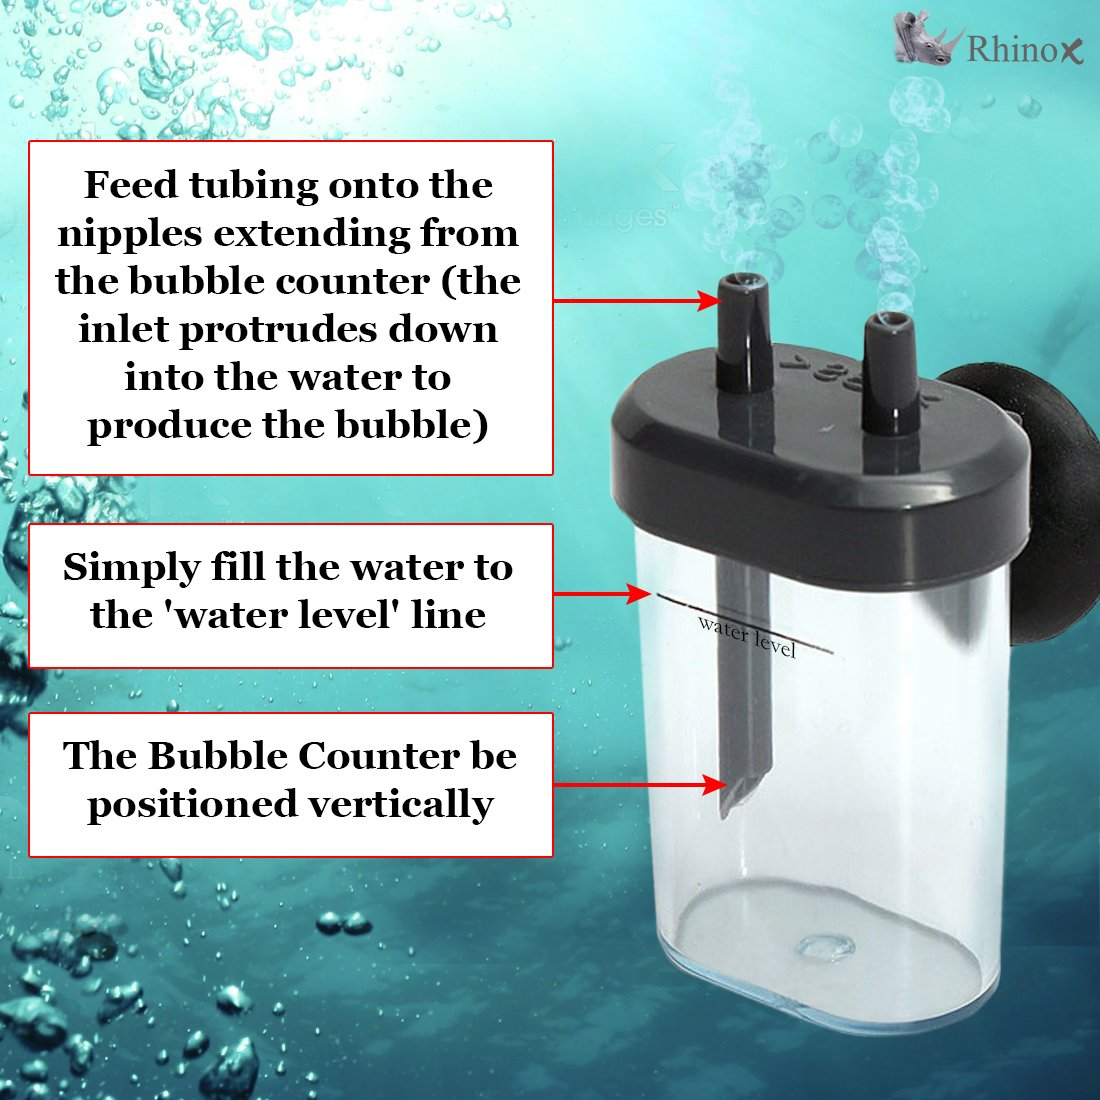 BPA-Free Plastic Rhinox DIY Co2 Bubble Counter - Accurate Co2 Reading for Healthier Fish and Aquatic Plants - Quick & Simple to Connect to Aquariums - Used with Rhinox Co2 Diffuser Set